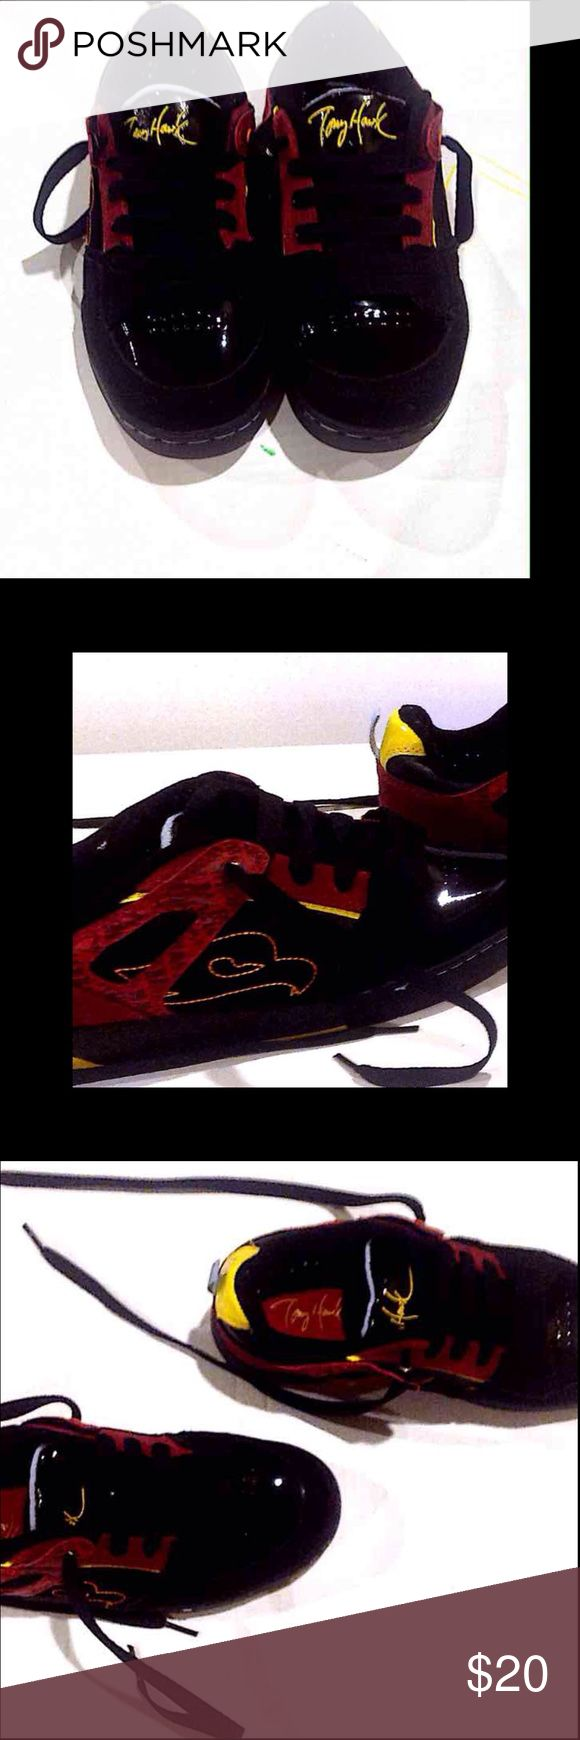 WEEKEND OFFER 🆕TONY HAWK BOYS SHOES . Tony Hawk Shoes. Bright colors like red, yellow and black .Brand new with black shoe lace and Tony Hawk embellished on the front , back and on the sides. Brand new with out tag. Never worn. Tony Hawk Shoes Sneakers